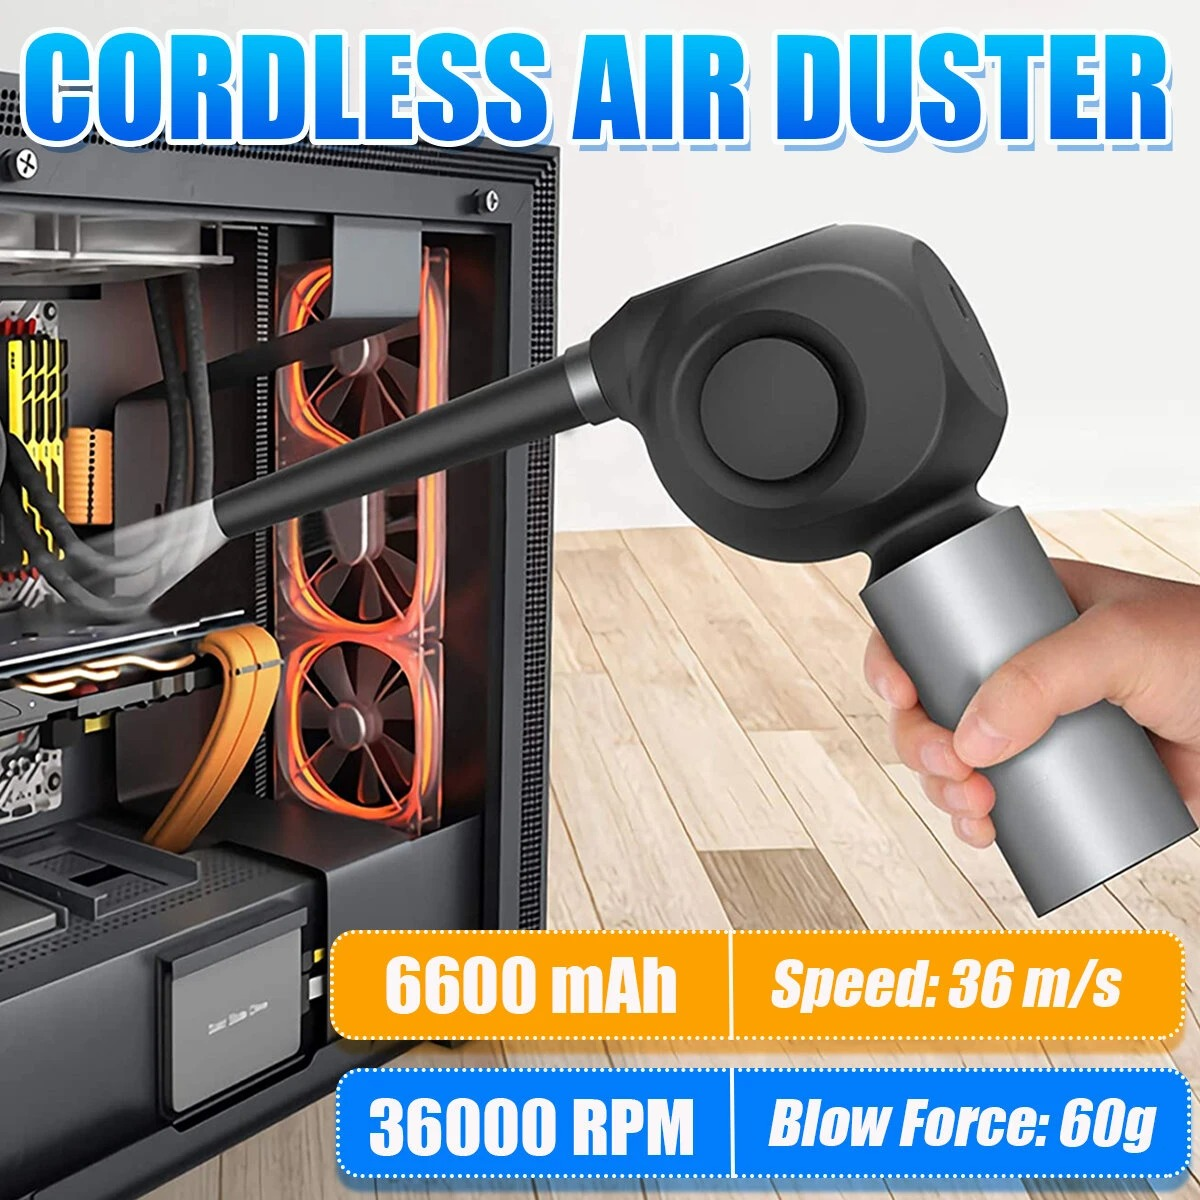 Multifunctional Cordless Air Duster Replaces Compressed Spray Gas Cans Rechargeable Cleaner Blower for Pet Car Laptop Keyboard Camera Phone